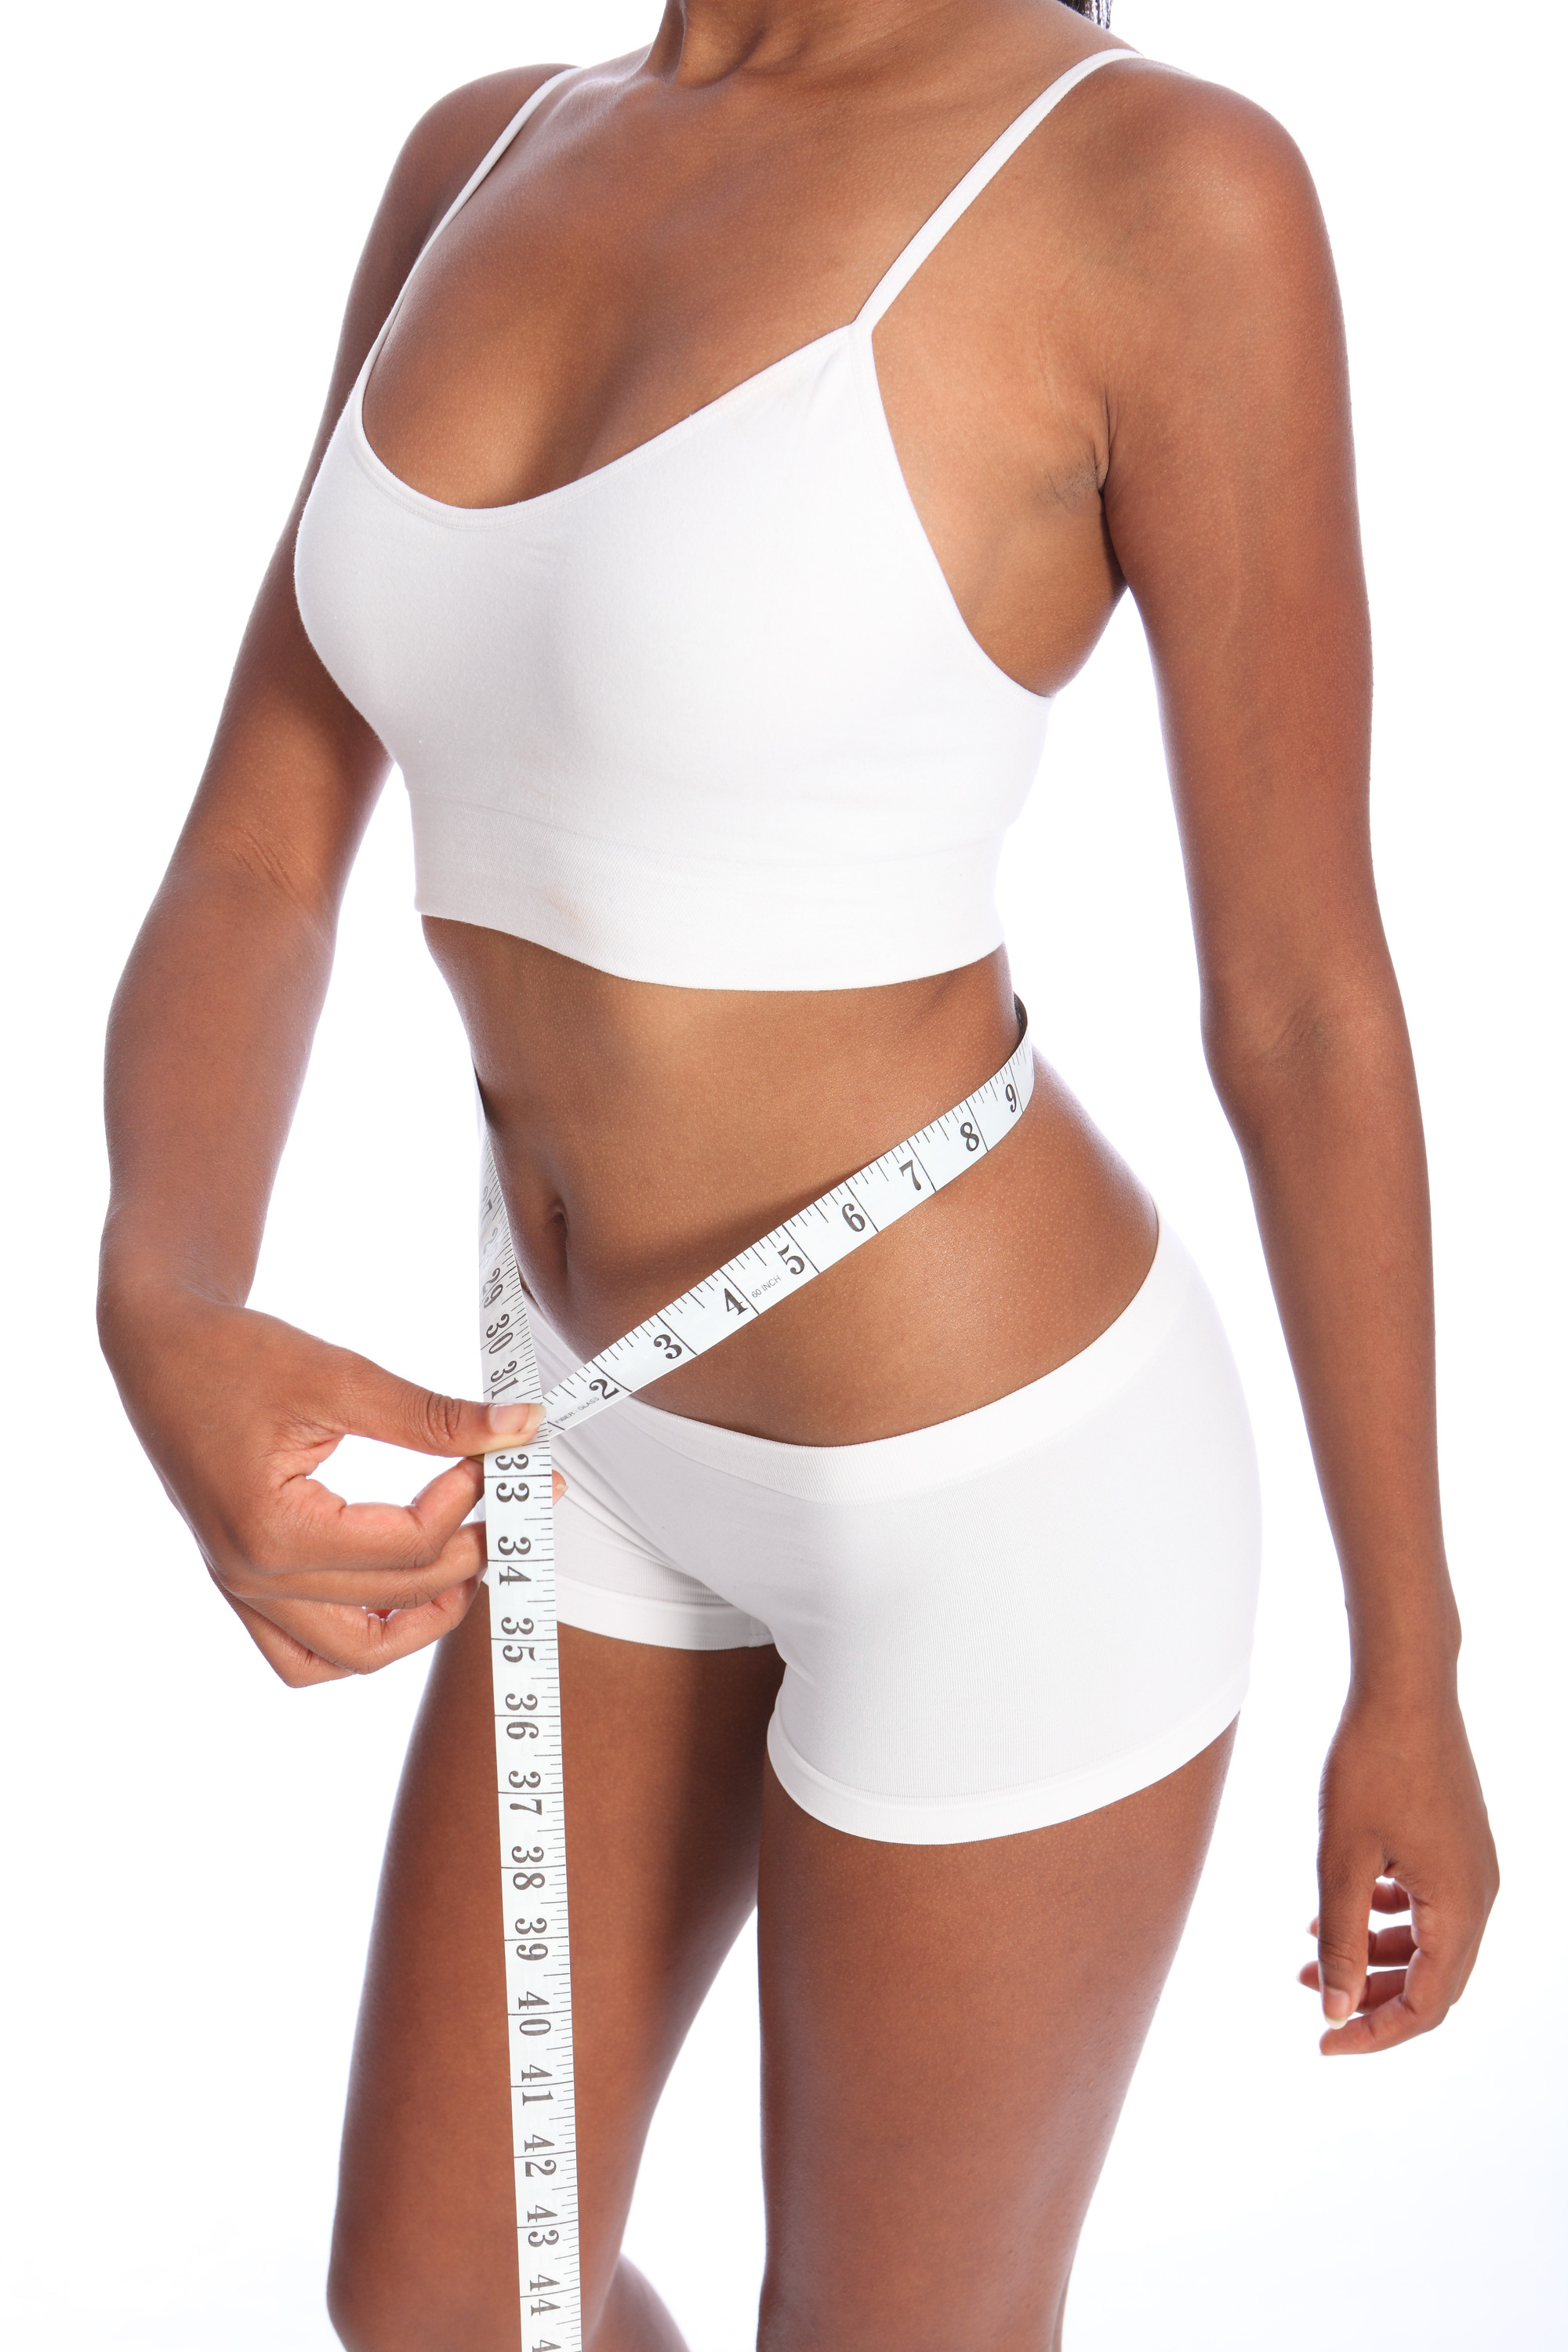 Weight Loss with Xtreme Slim HGC Drops